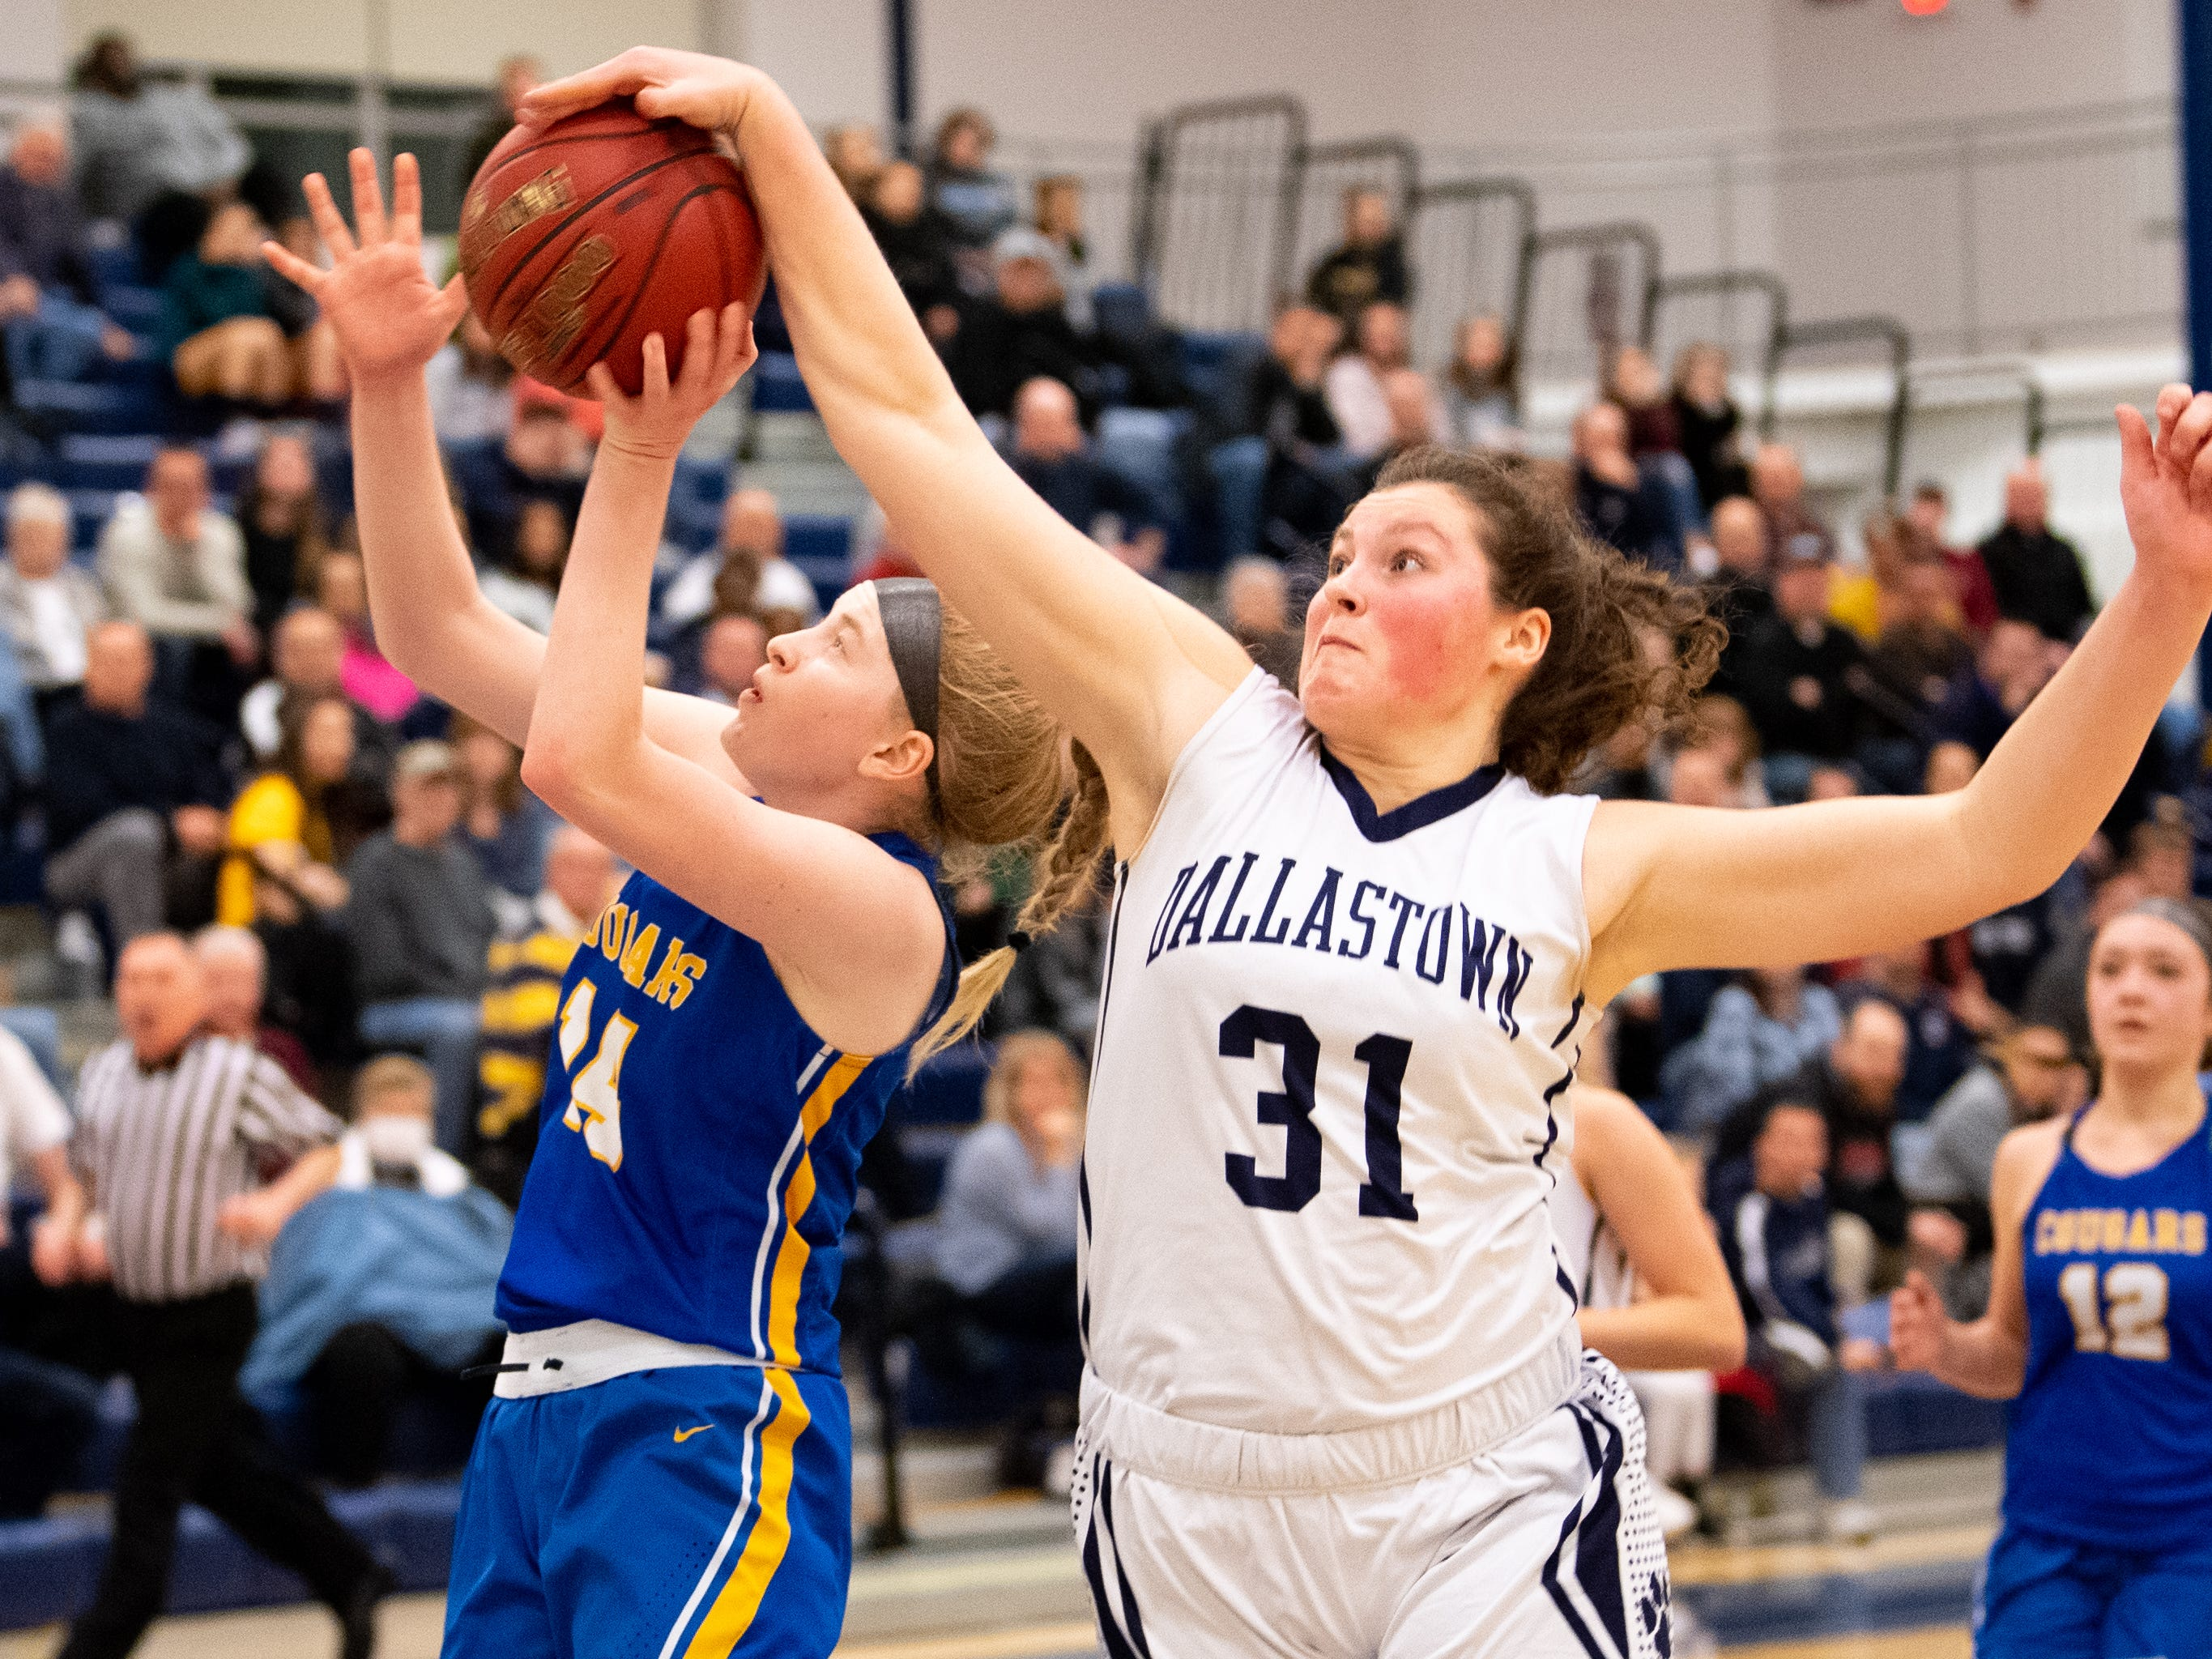 Samantha Miller (31) gets a block during the PIAA first round girls' basketball game between Dallastown and Downingtown East Friday, March 8, 2019 at West York Area High School. The Wildcats are neck and neck with the Cougars.